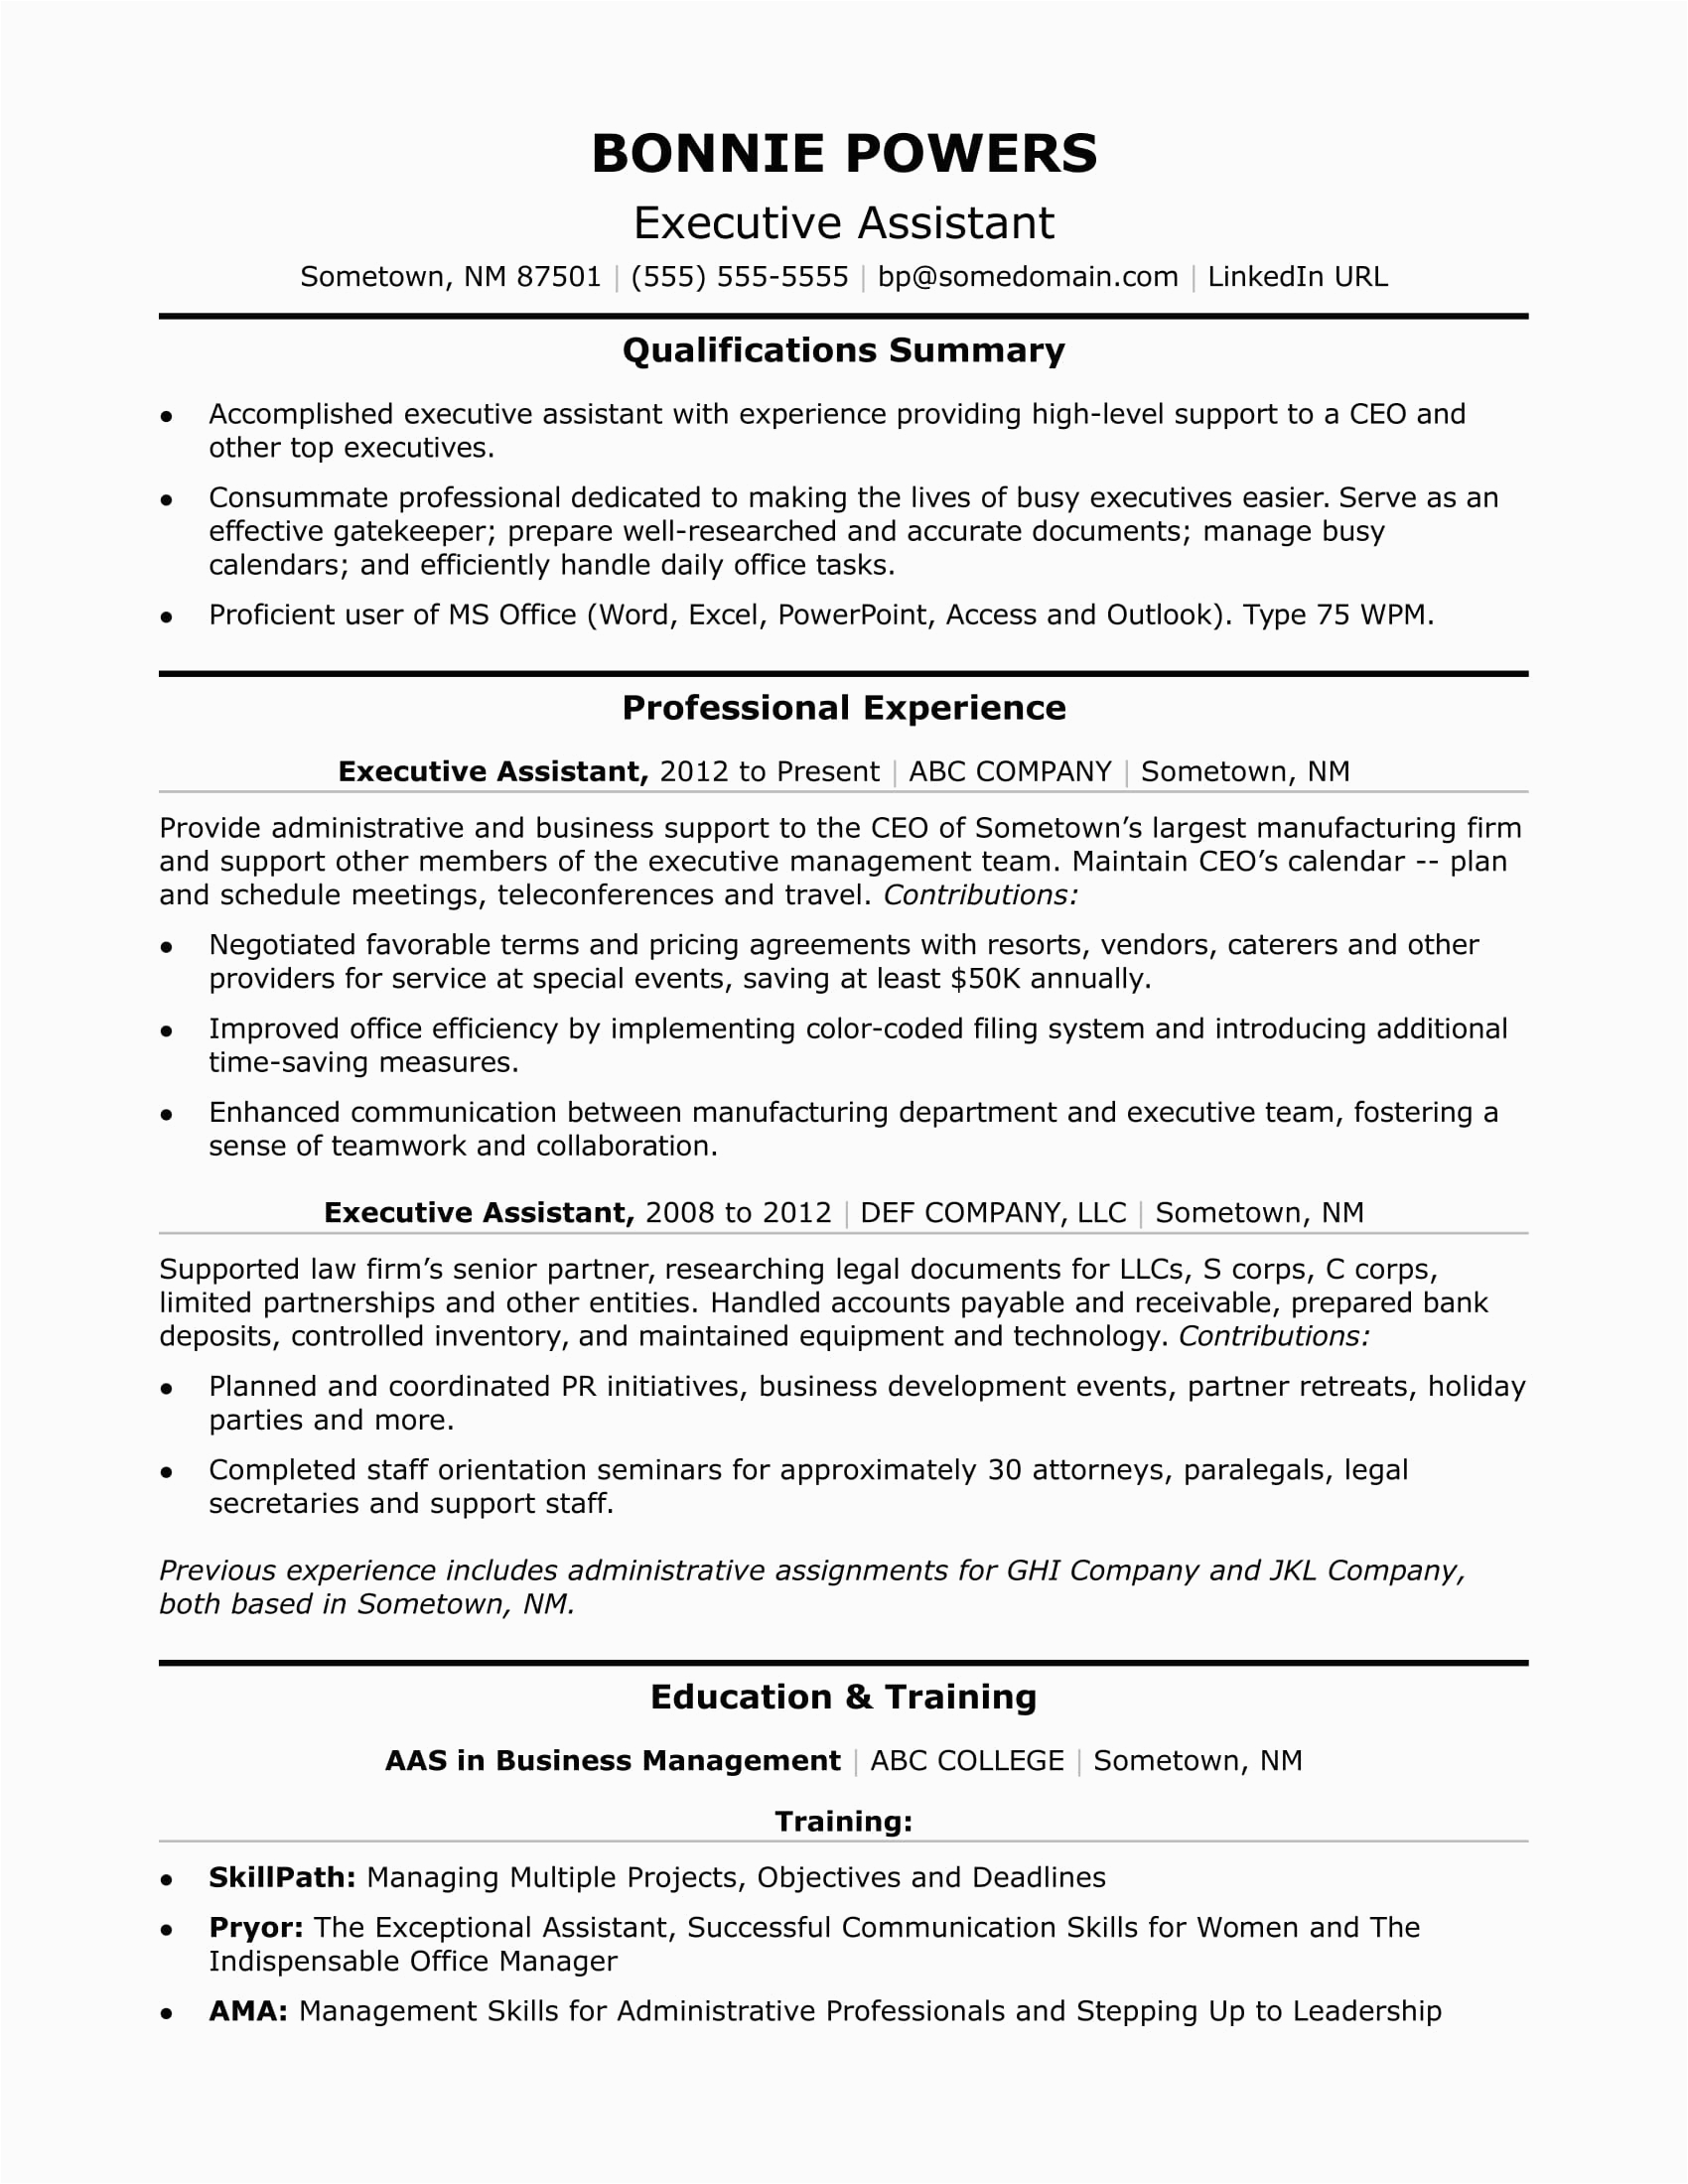 sample resume executive assistant